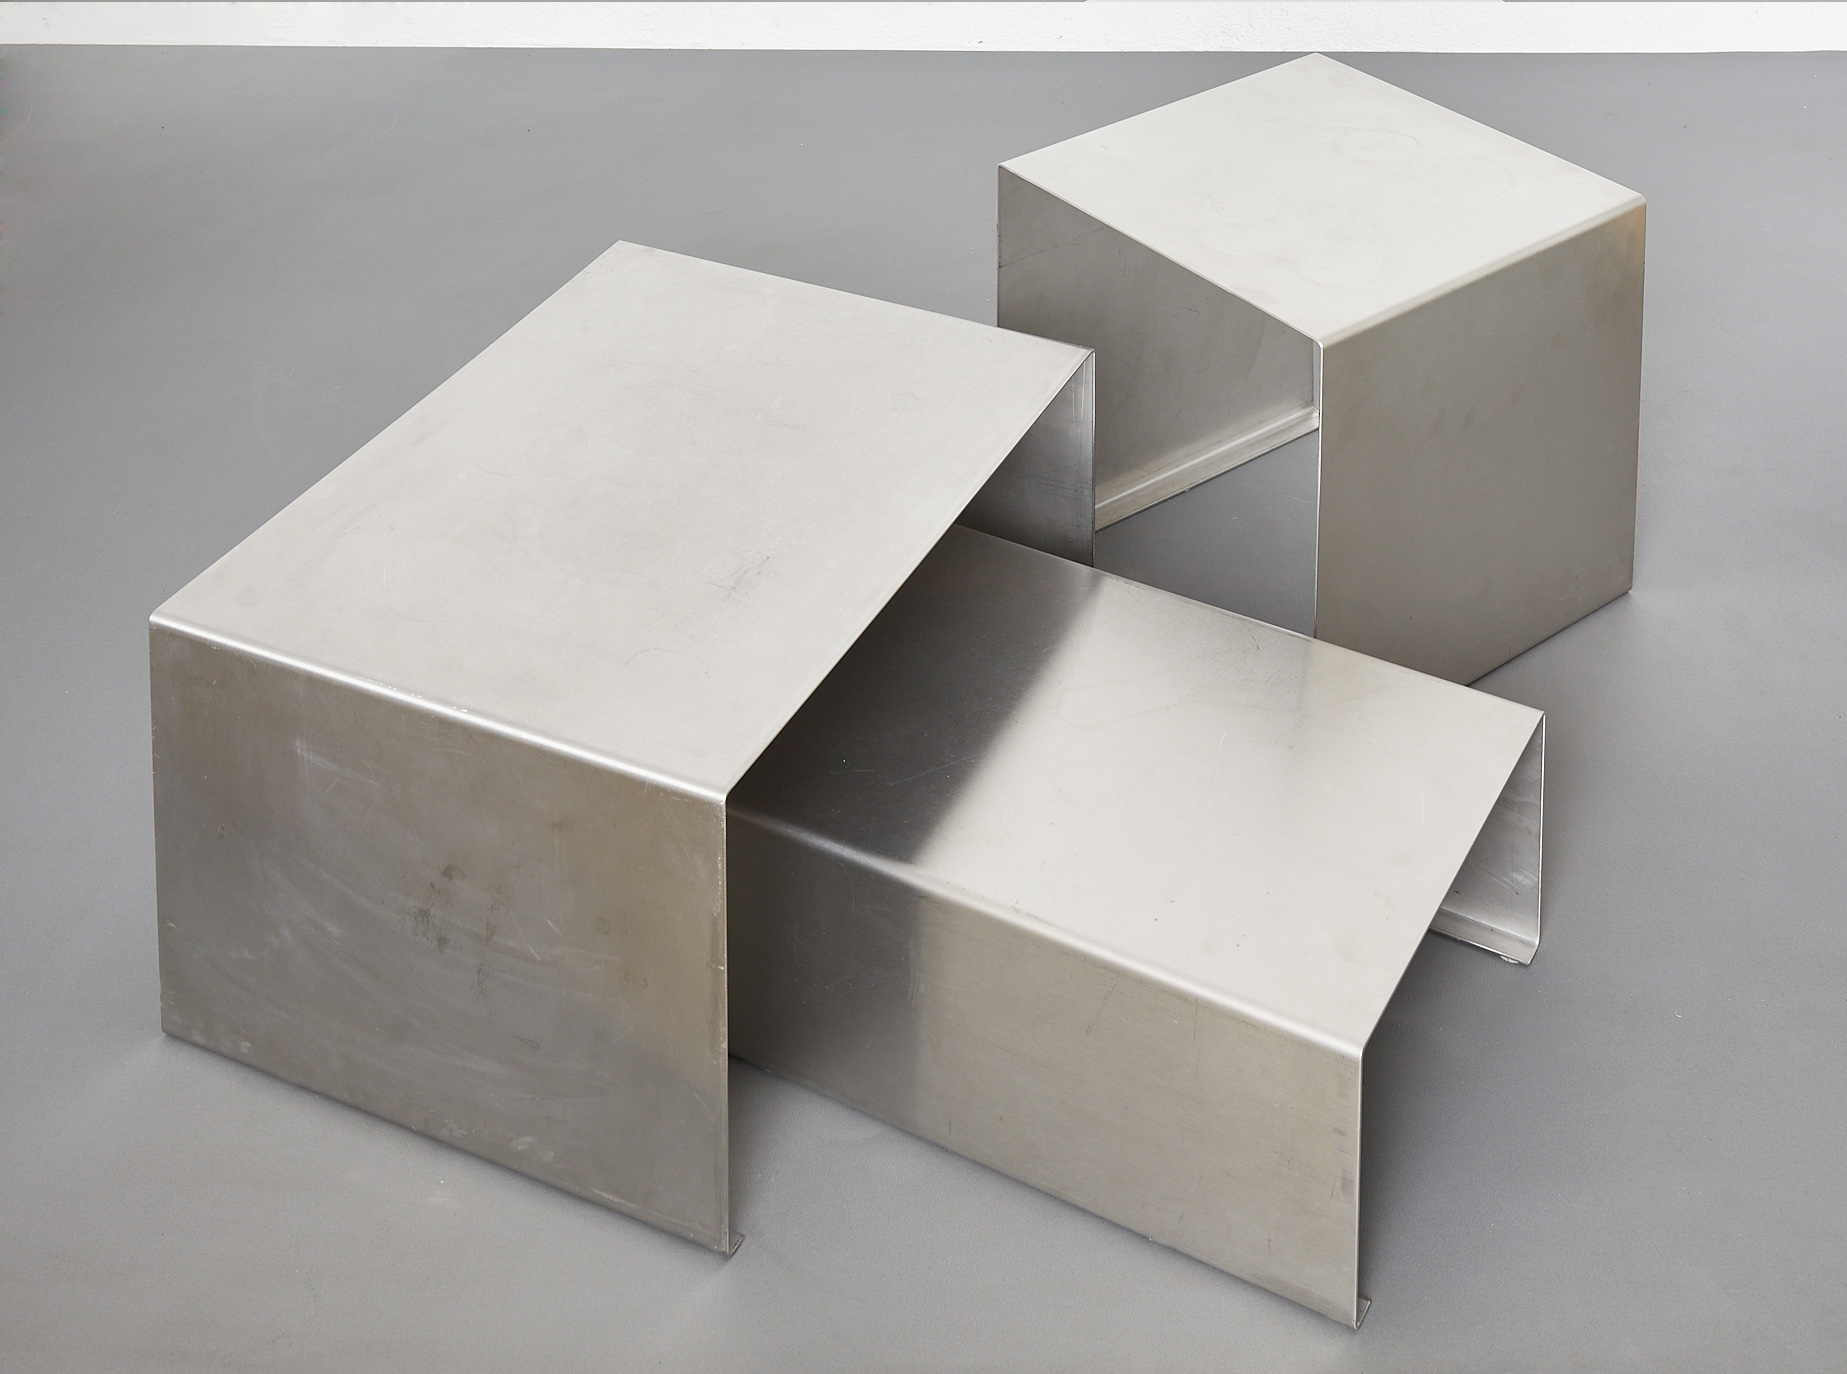 set-of-low-tables-in-brushed-metal-1970-1980-image-09